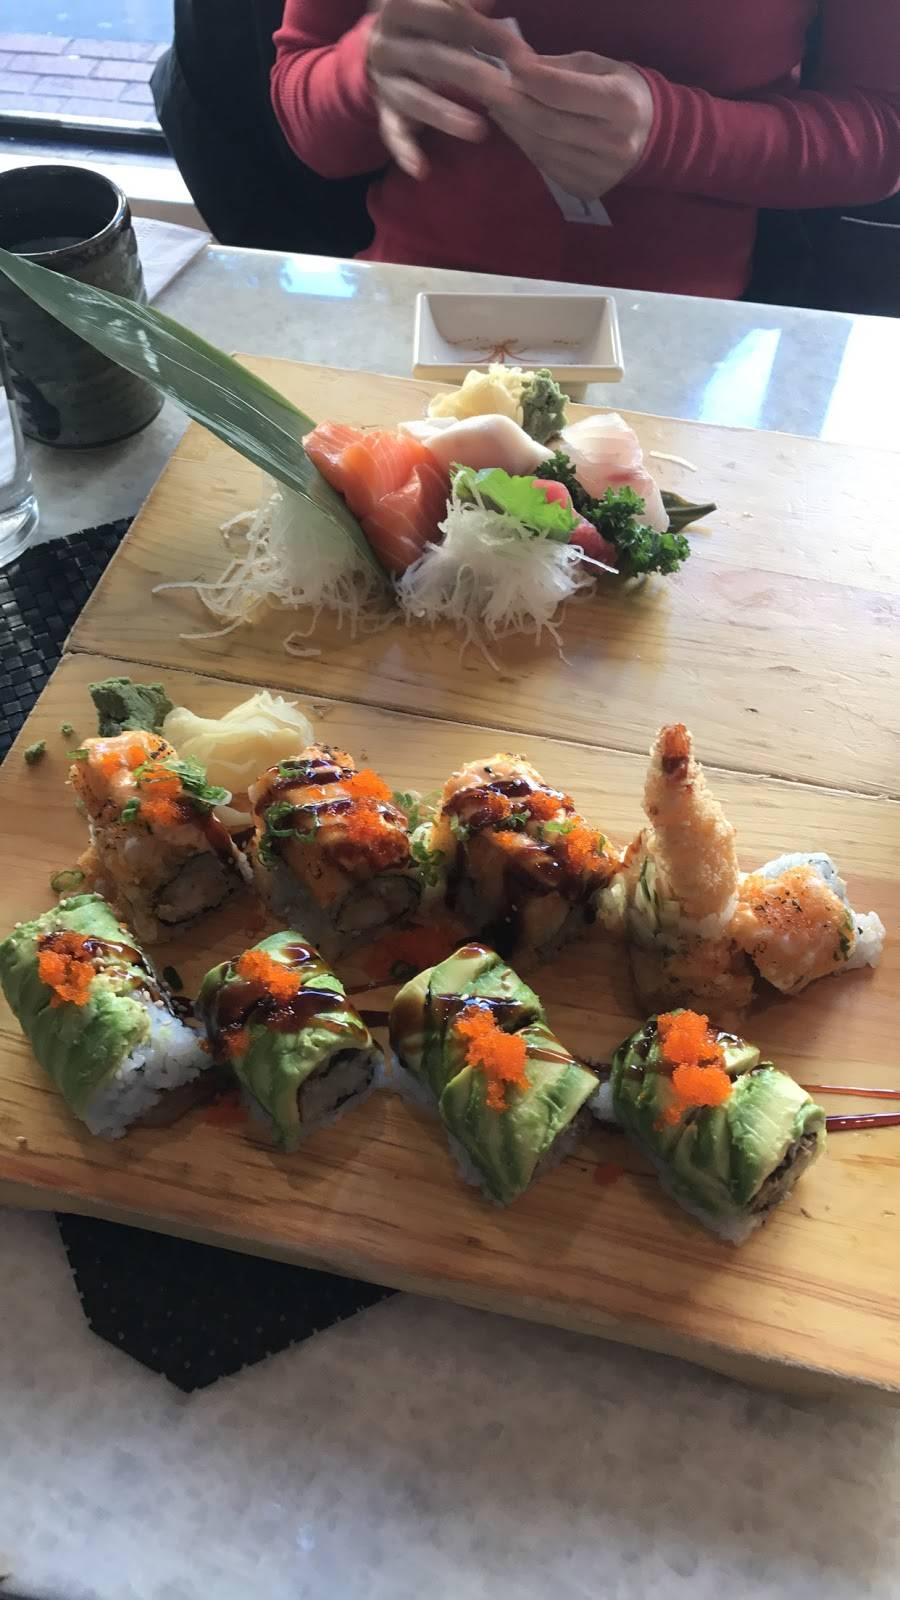 Bamboo Sushi | restaurant | 5602, 1280 1st Avenue, New York, NY 10065, USA | 2123961919 OR +1 212-396-1919